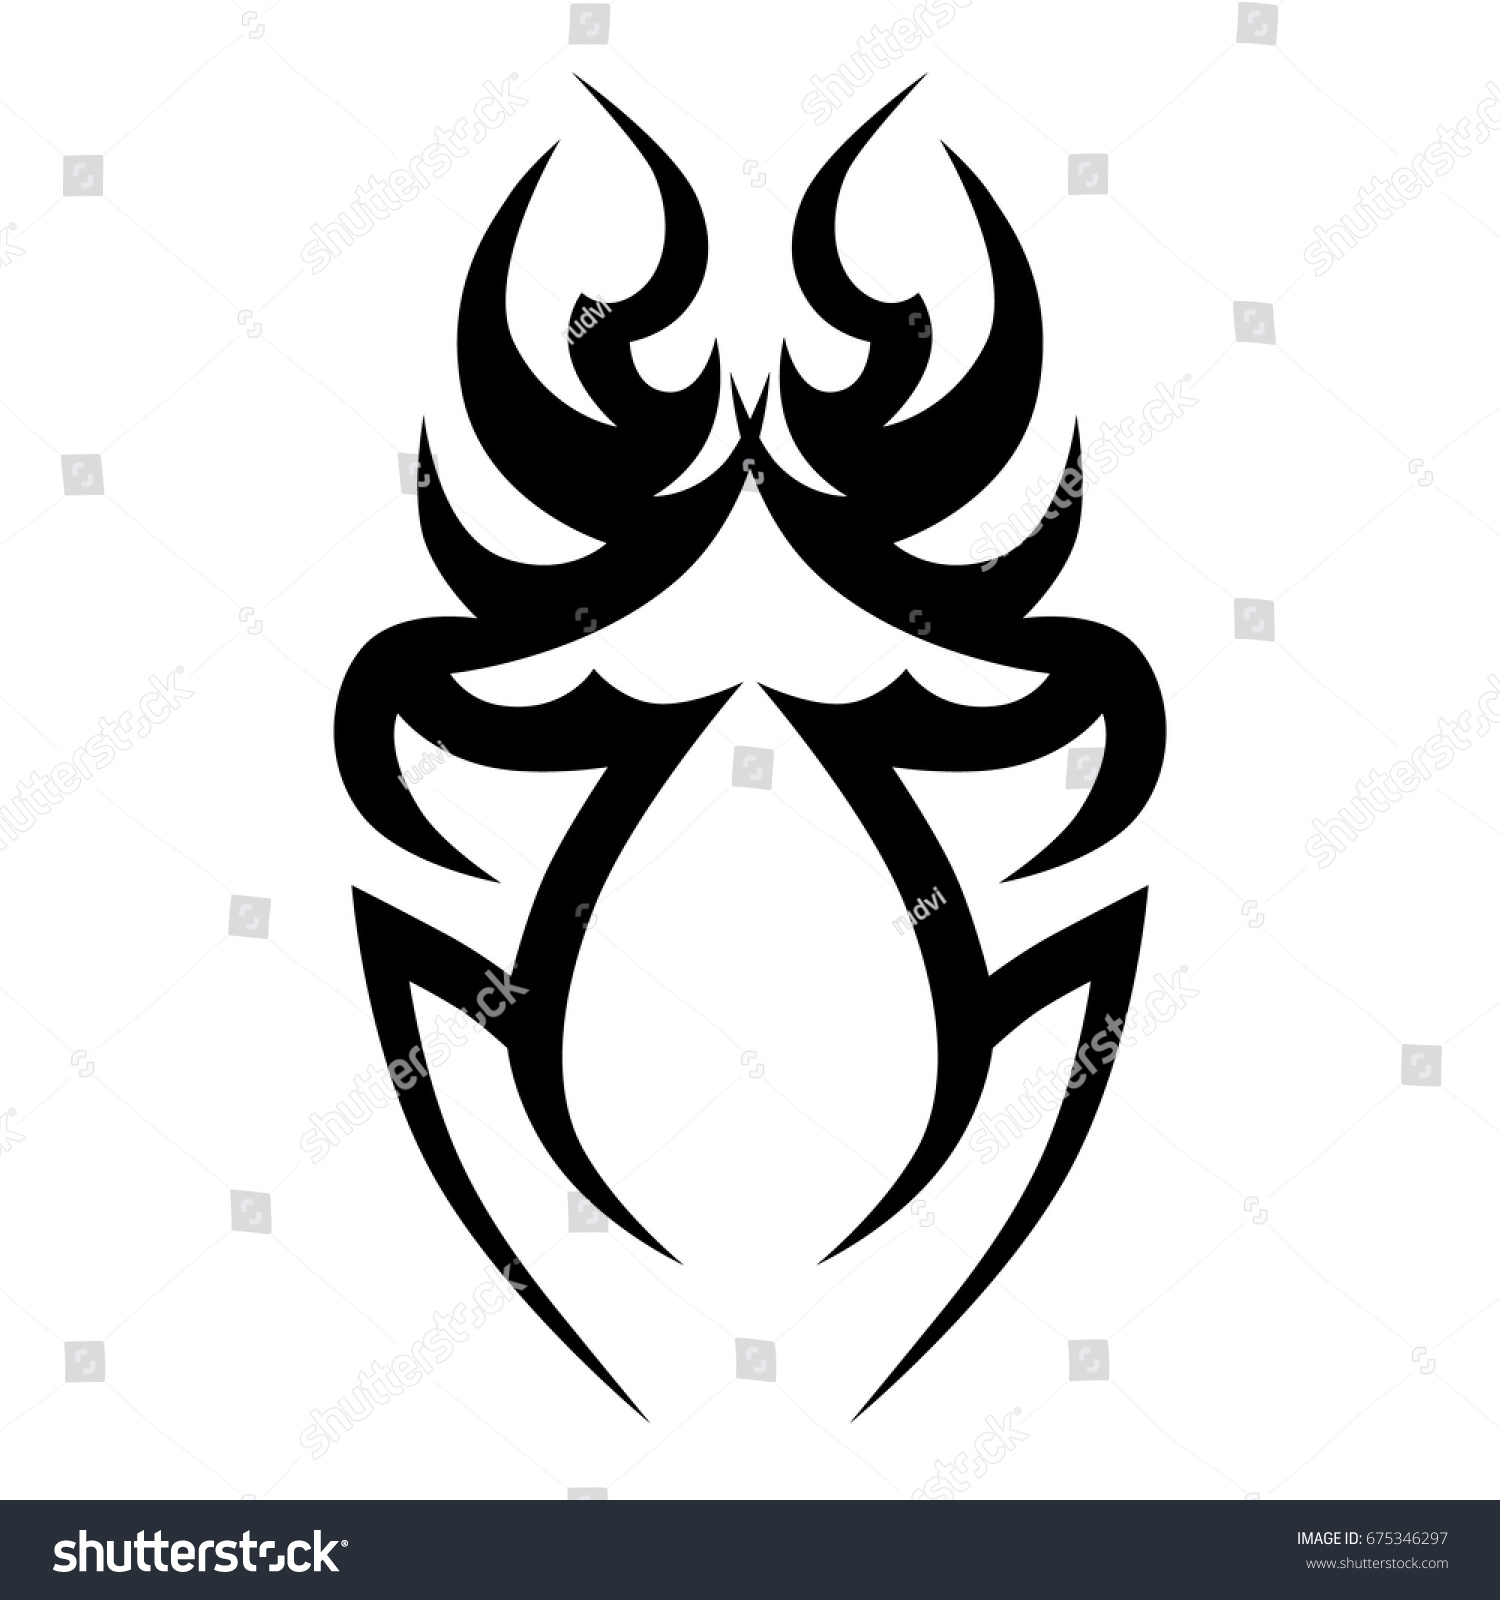 tattoo art designs tribal sketchideas creative stock vector 675346297 shutterstock. Black Bedroom Furniture Sets. Home Design Ideas